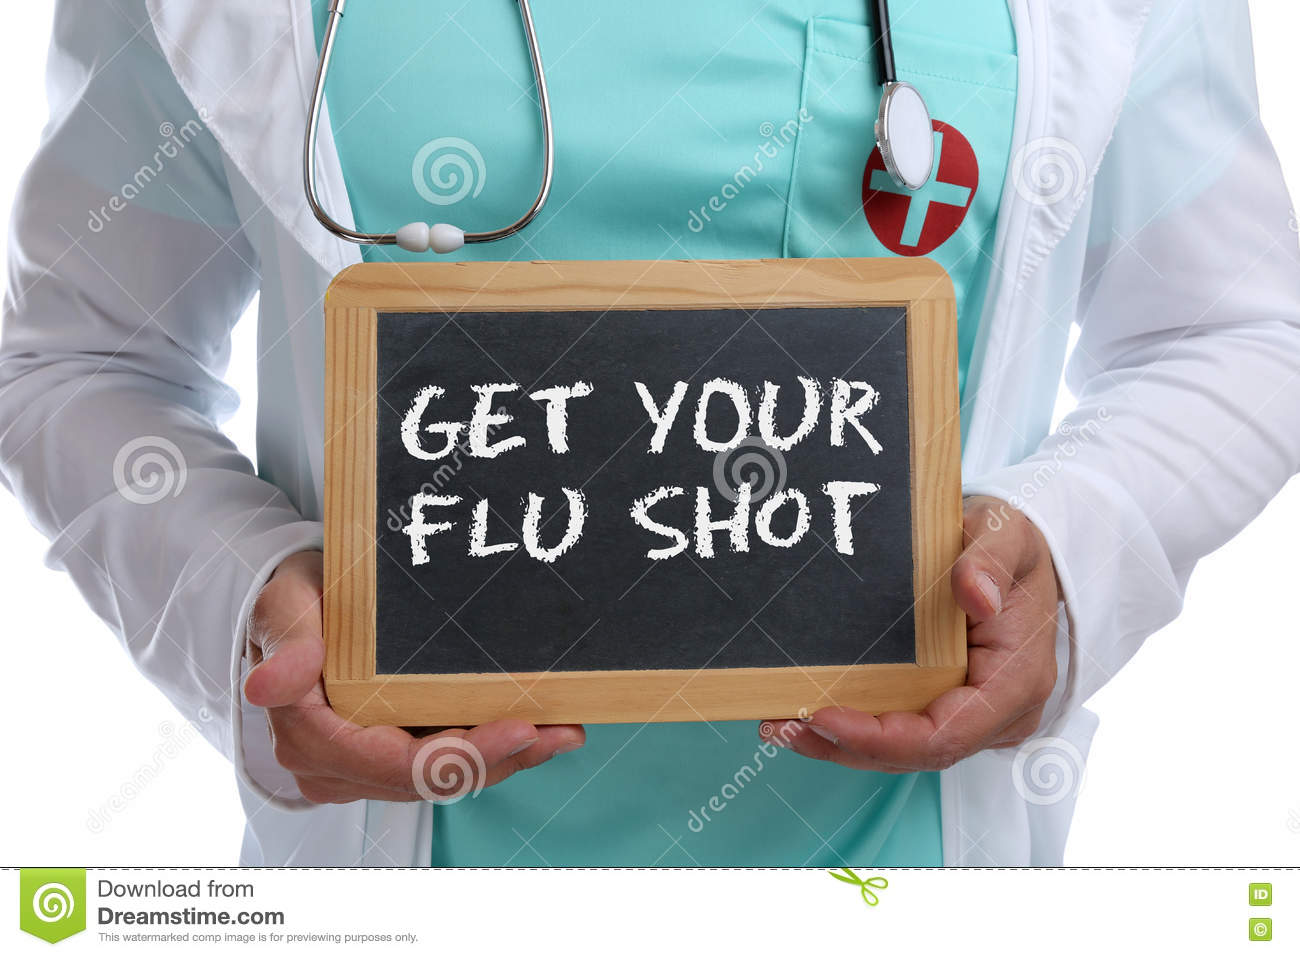 Get your flu shot disease ill illness healthy health young doctor